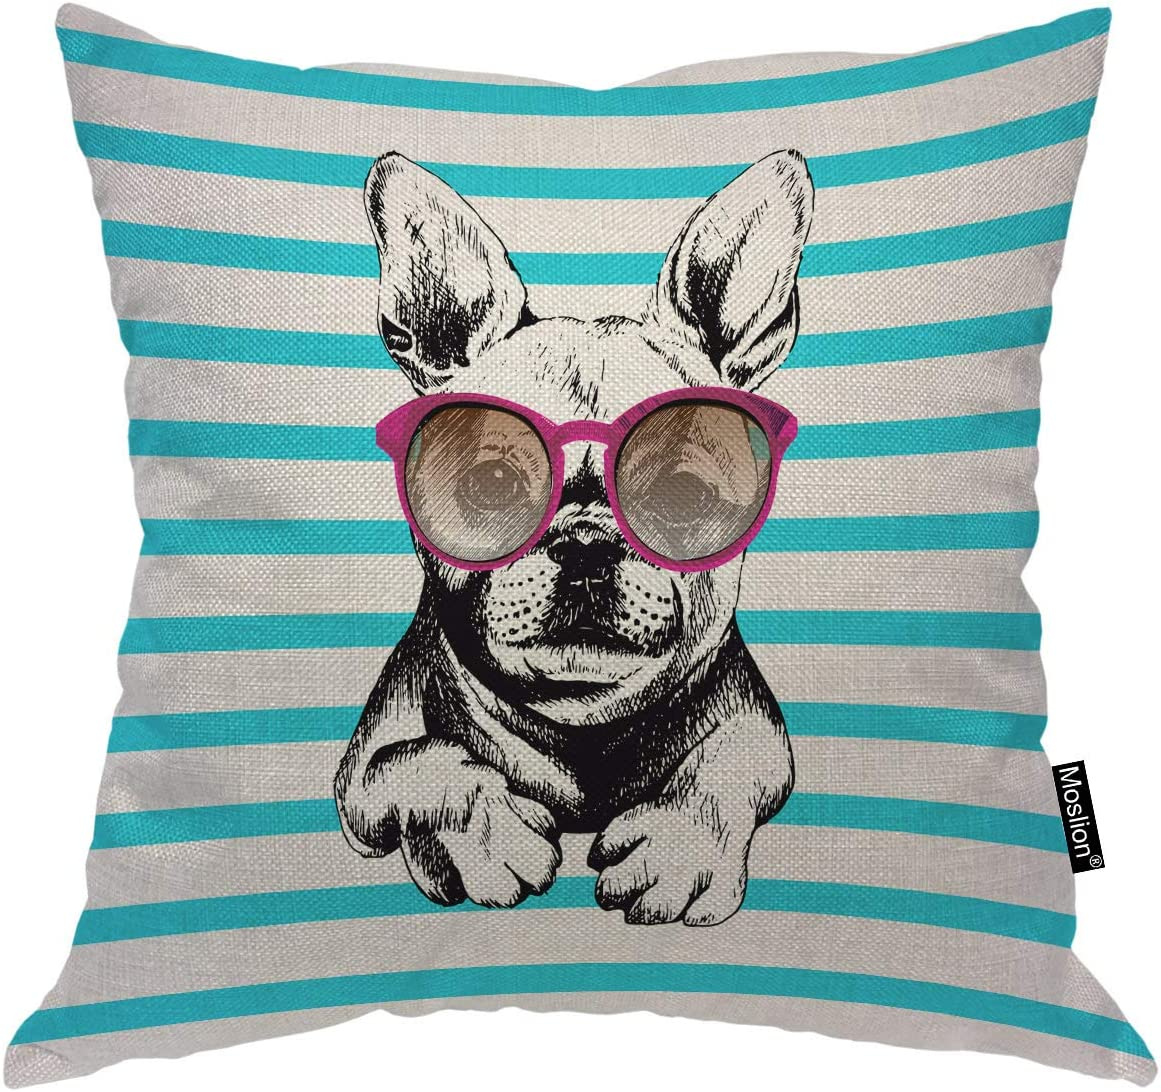 """Moslion Dog Pillow Home Decorative Throw Pillow Cover Dog Wear Purple Sunglasses Pattern Square Cushion Cover Standard Pillow Cases for Women Girls Kid Sofa Bedroom Livingroom 18""""x18"""" Black Teal …"""